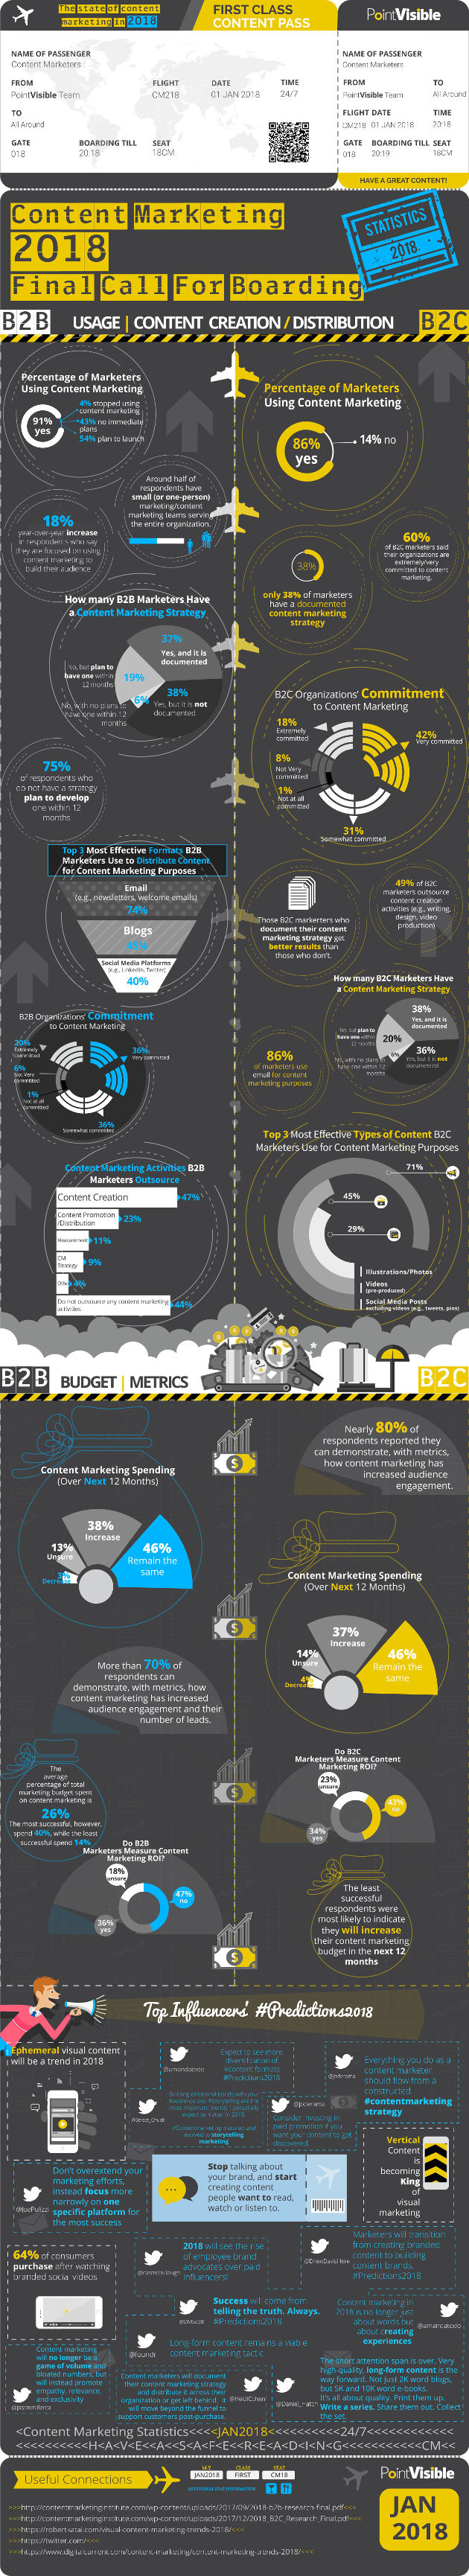 180205-infographic-content-marketing-trends-small